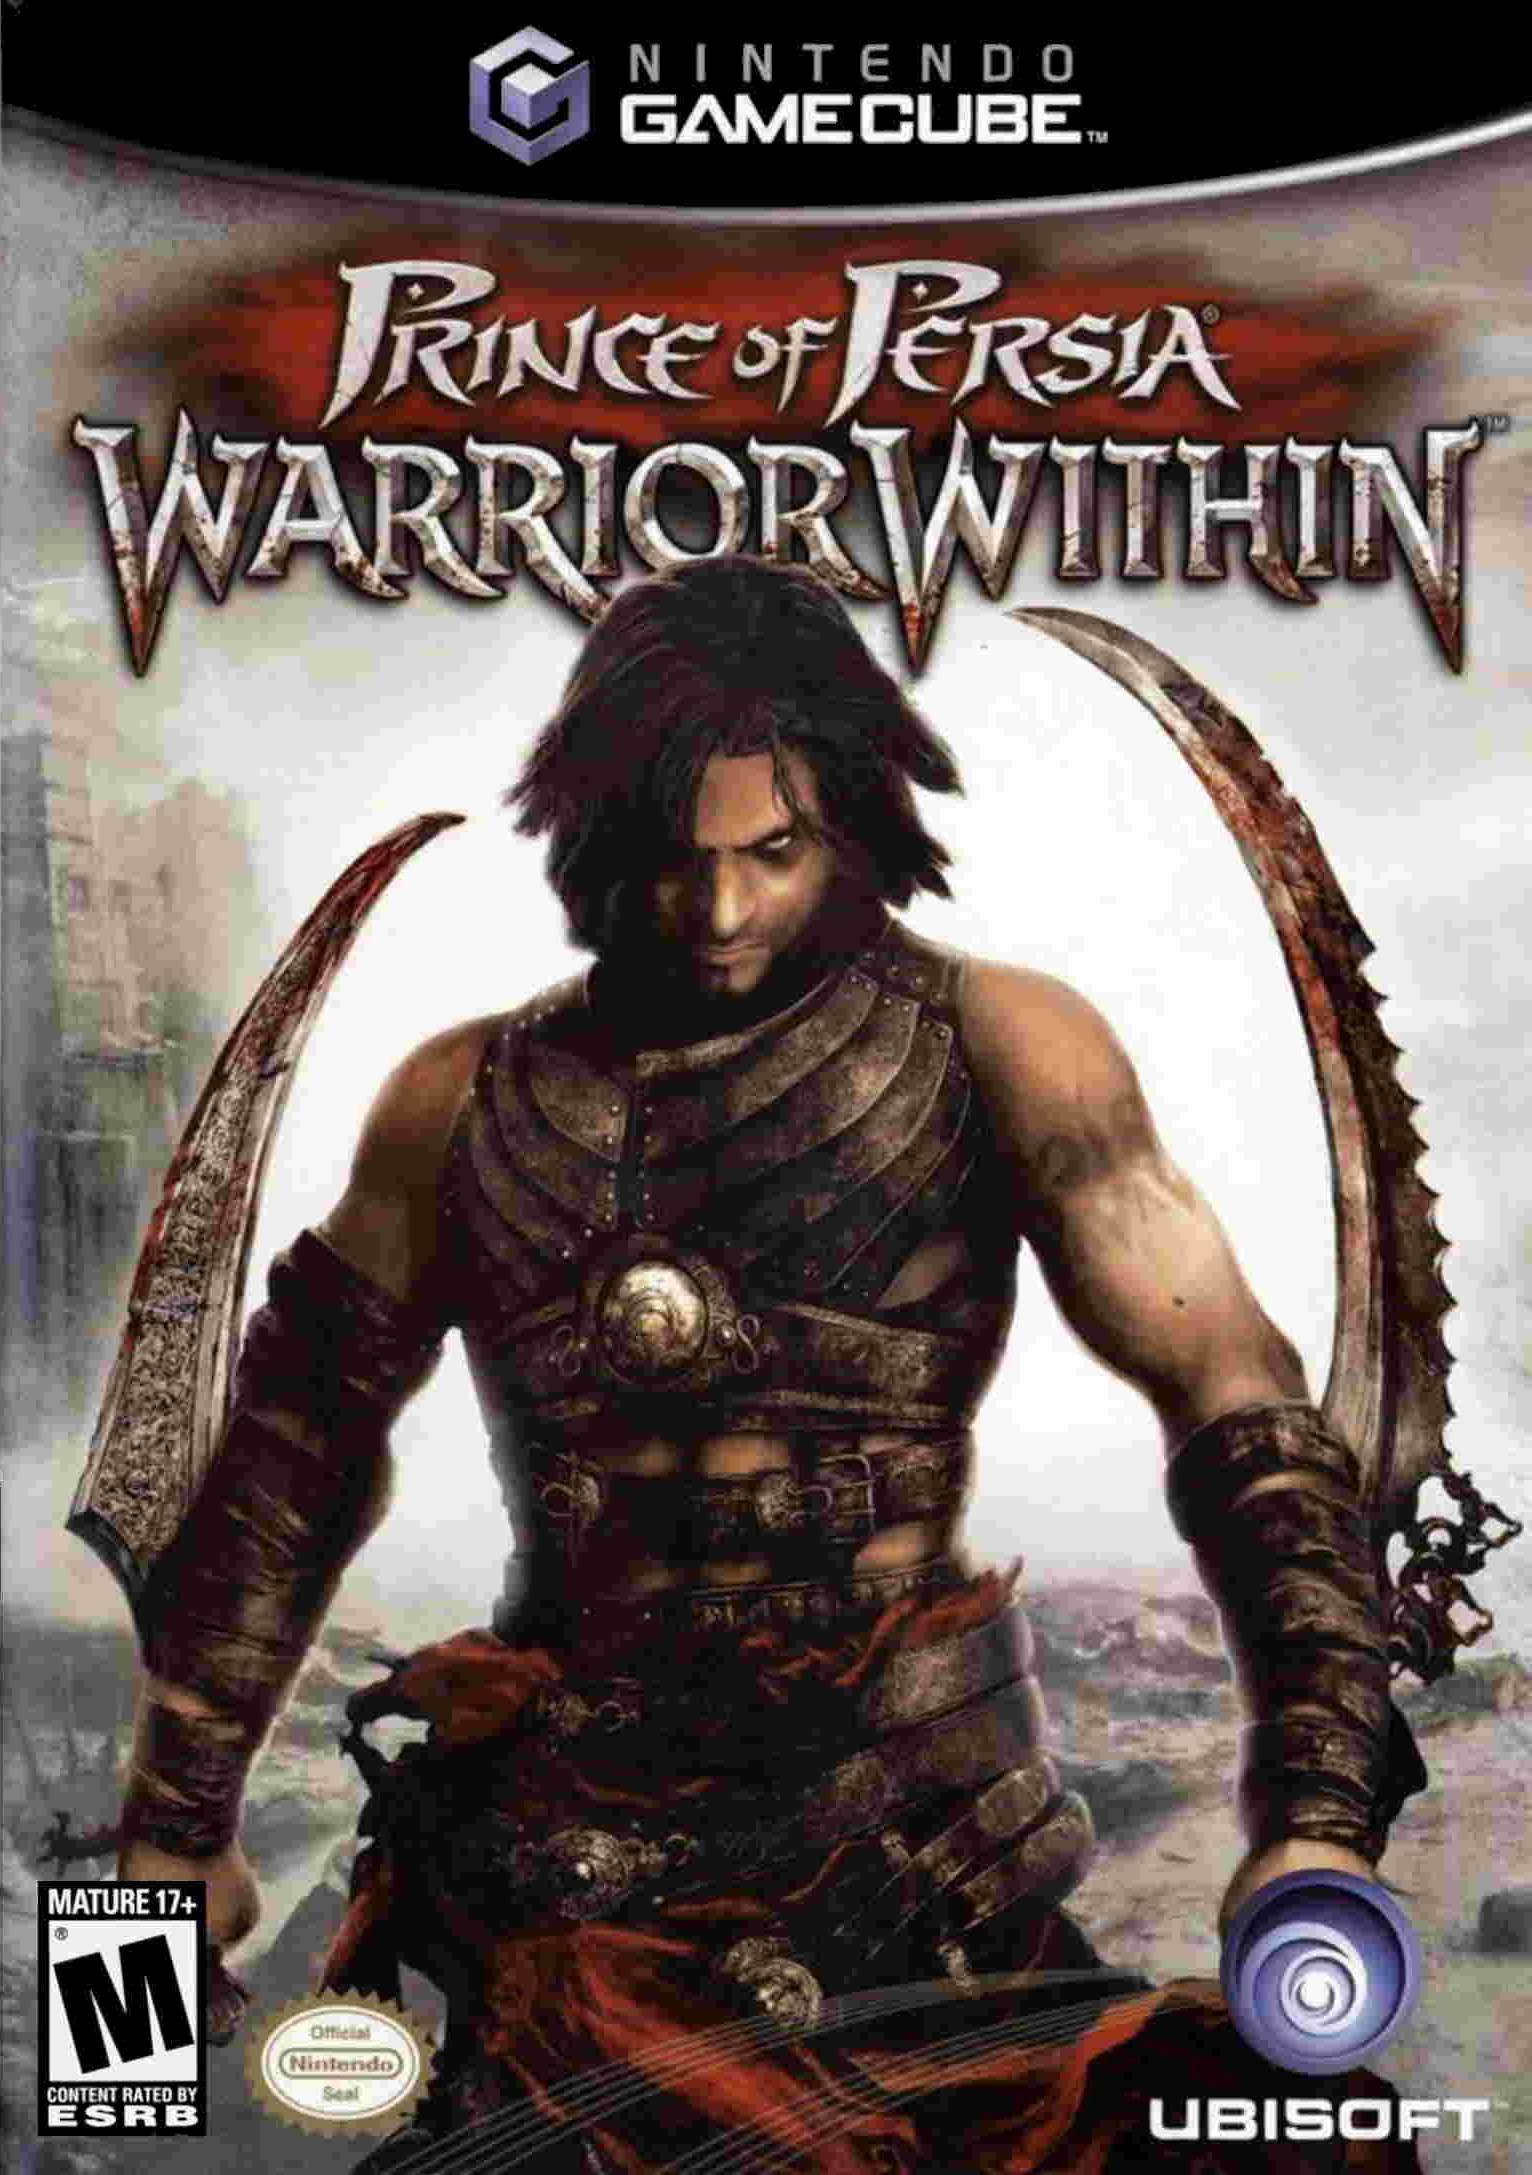 http://wiki.dolphin-emu.org/images/9/9e/Prince_of_Persia-Warrior_Within.jpg